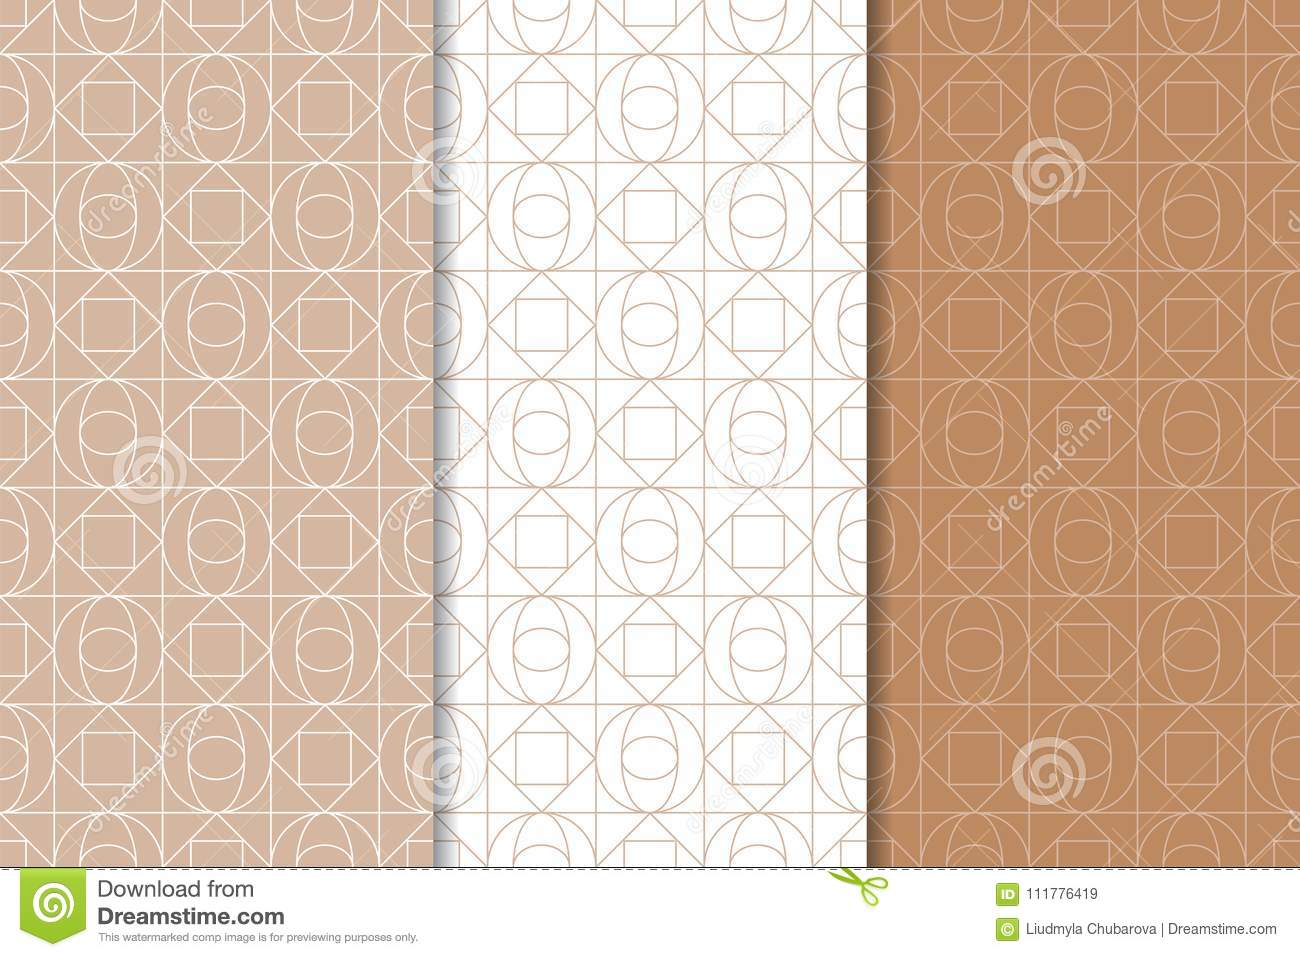 Brown and white set of geometric seamless patterns